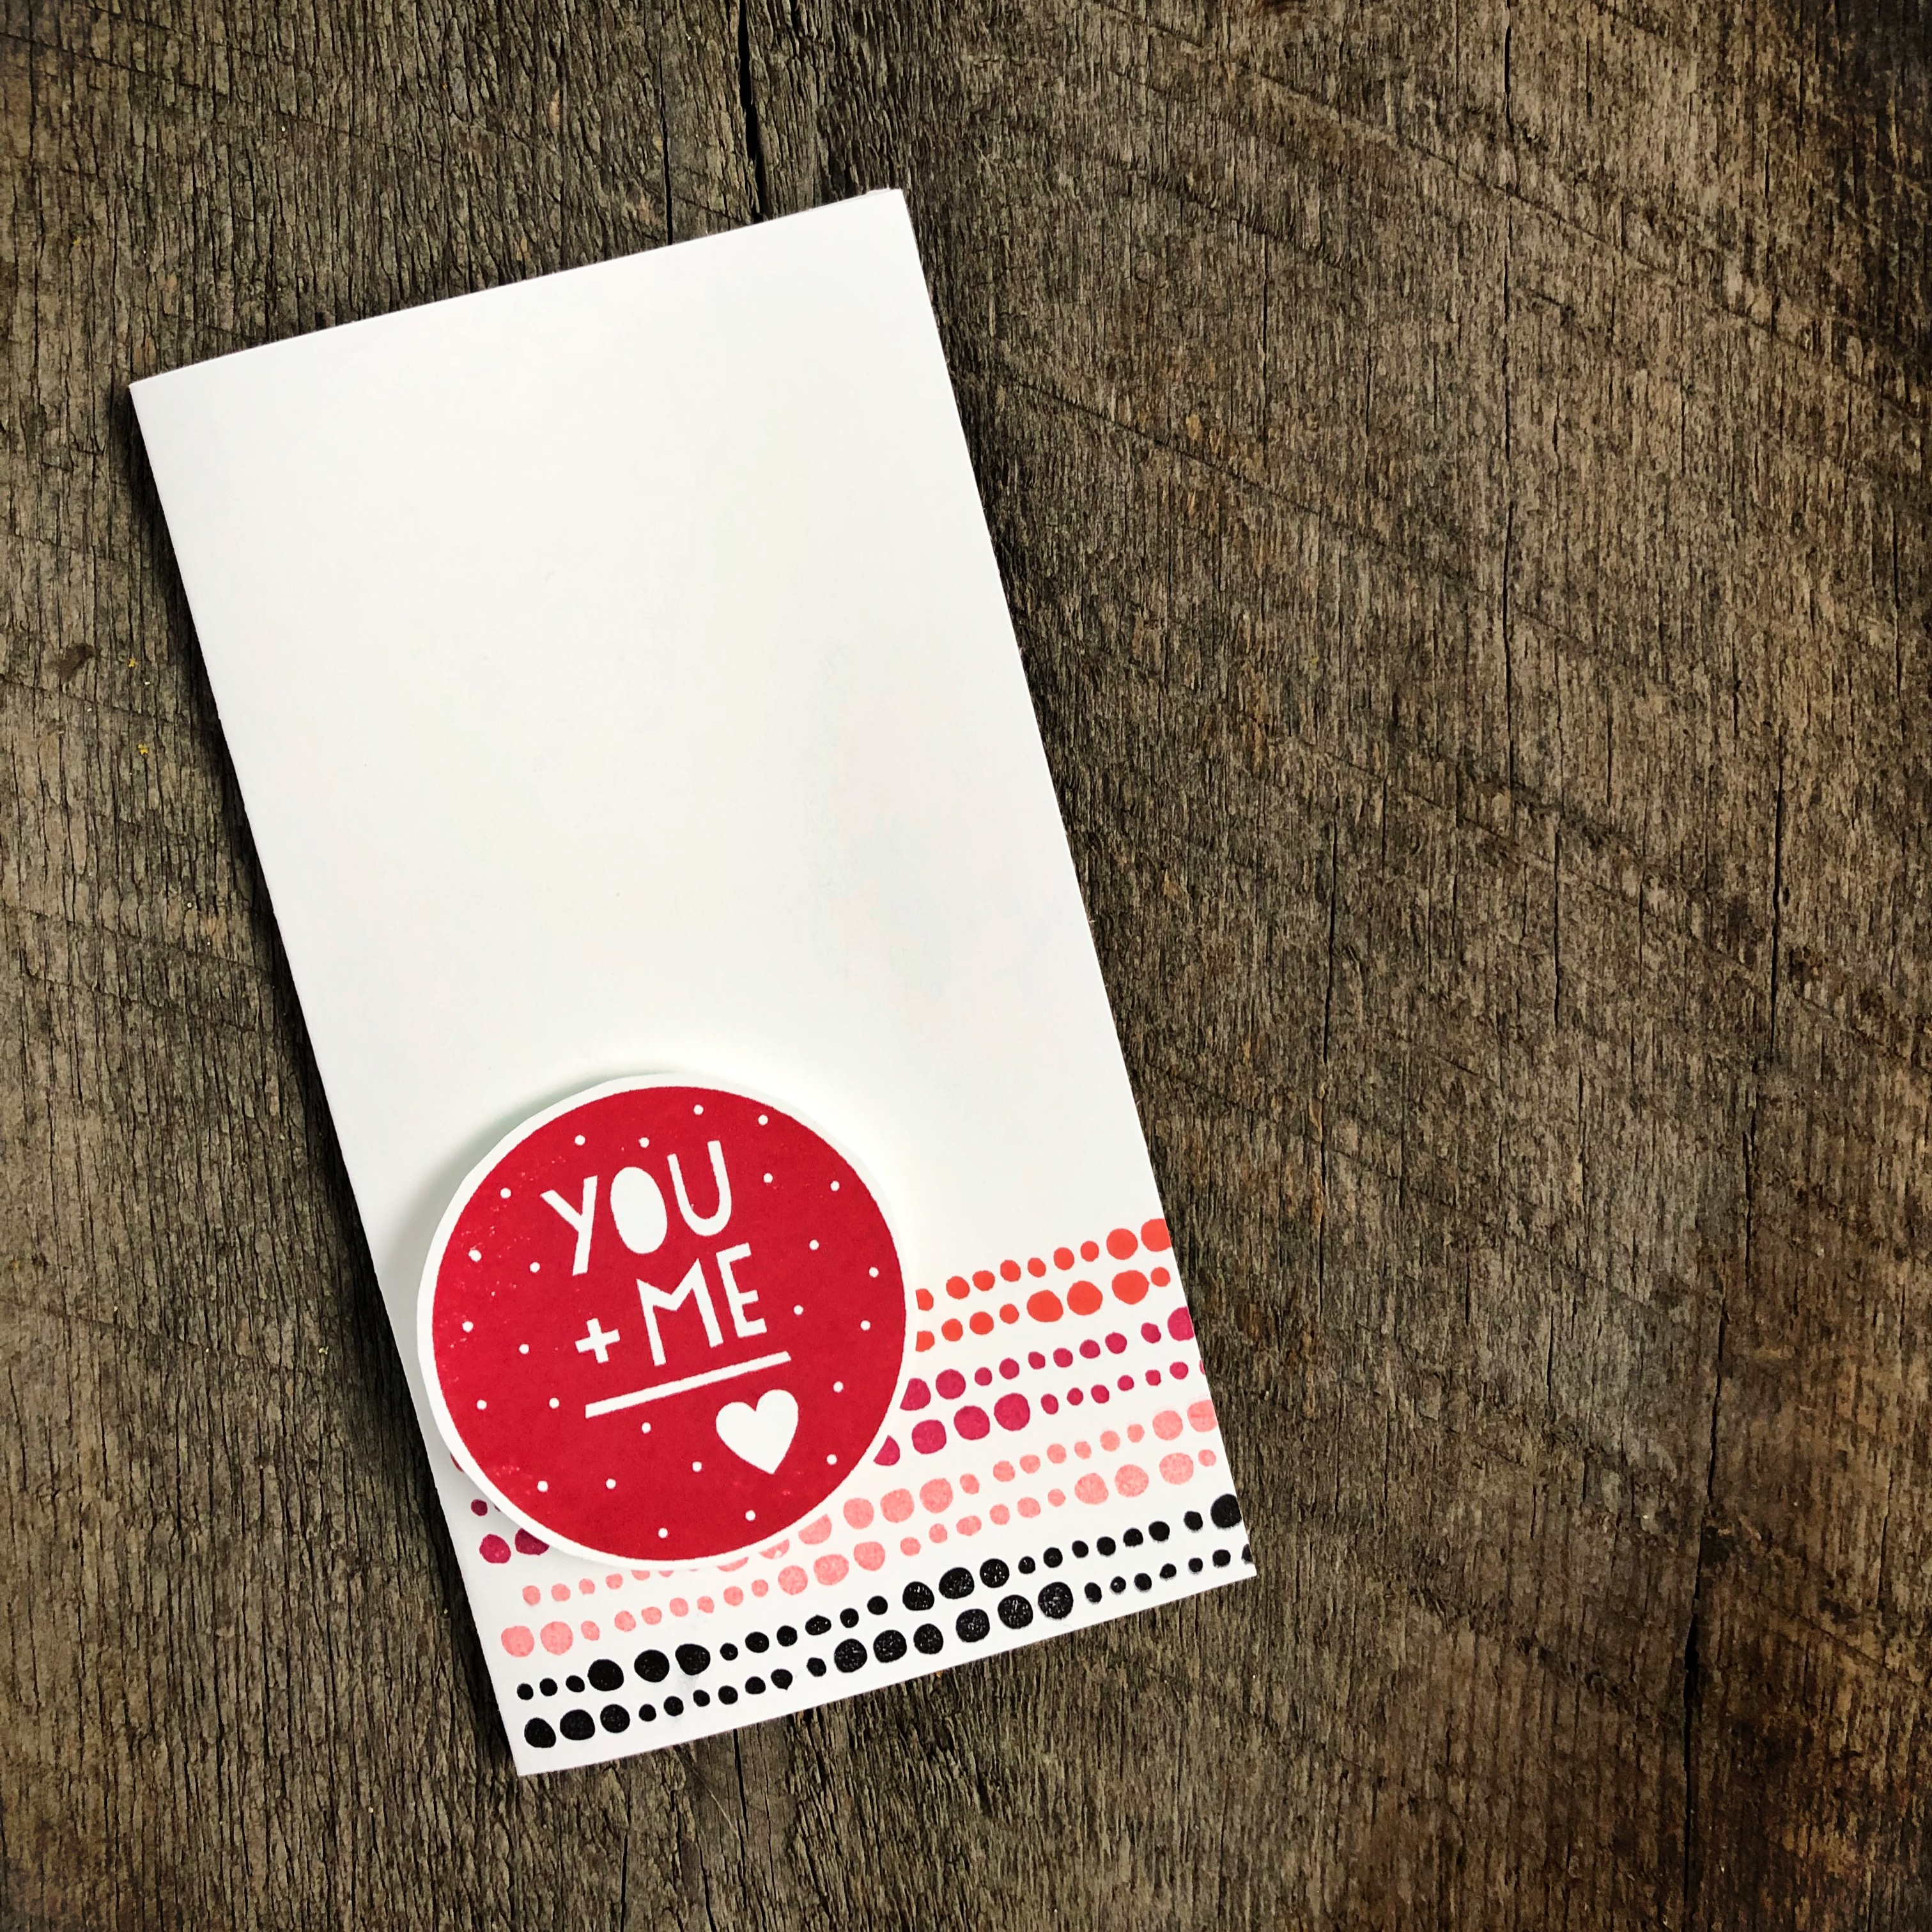 PDX Paperie [Stampin' Up!]